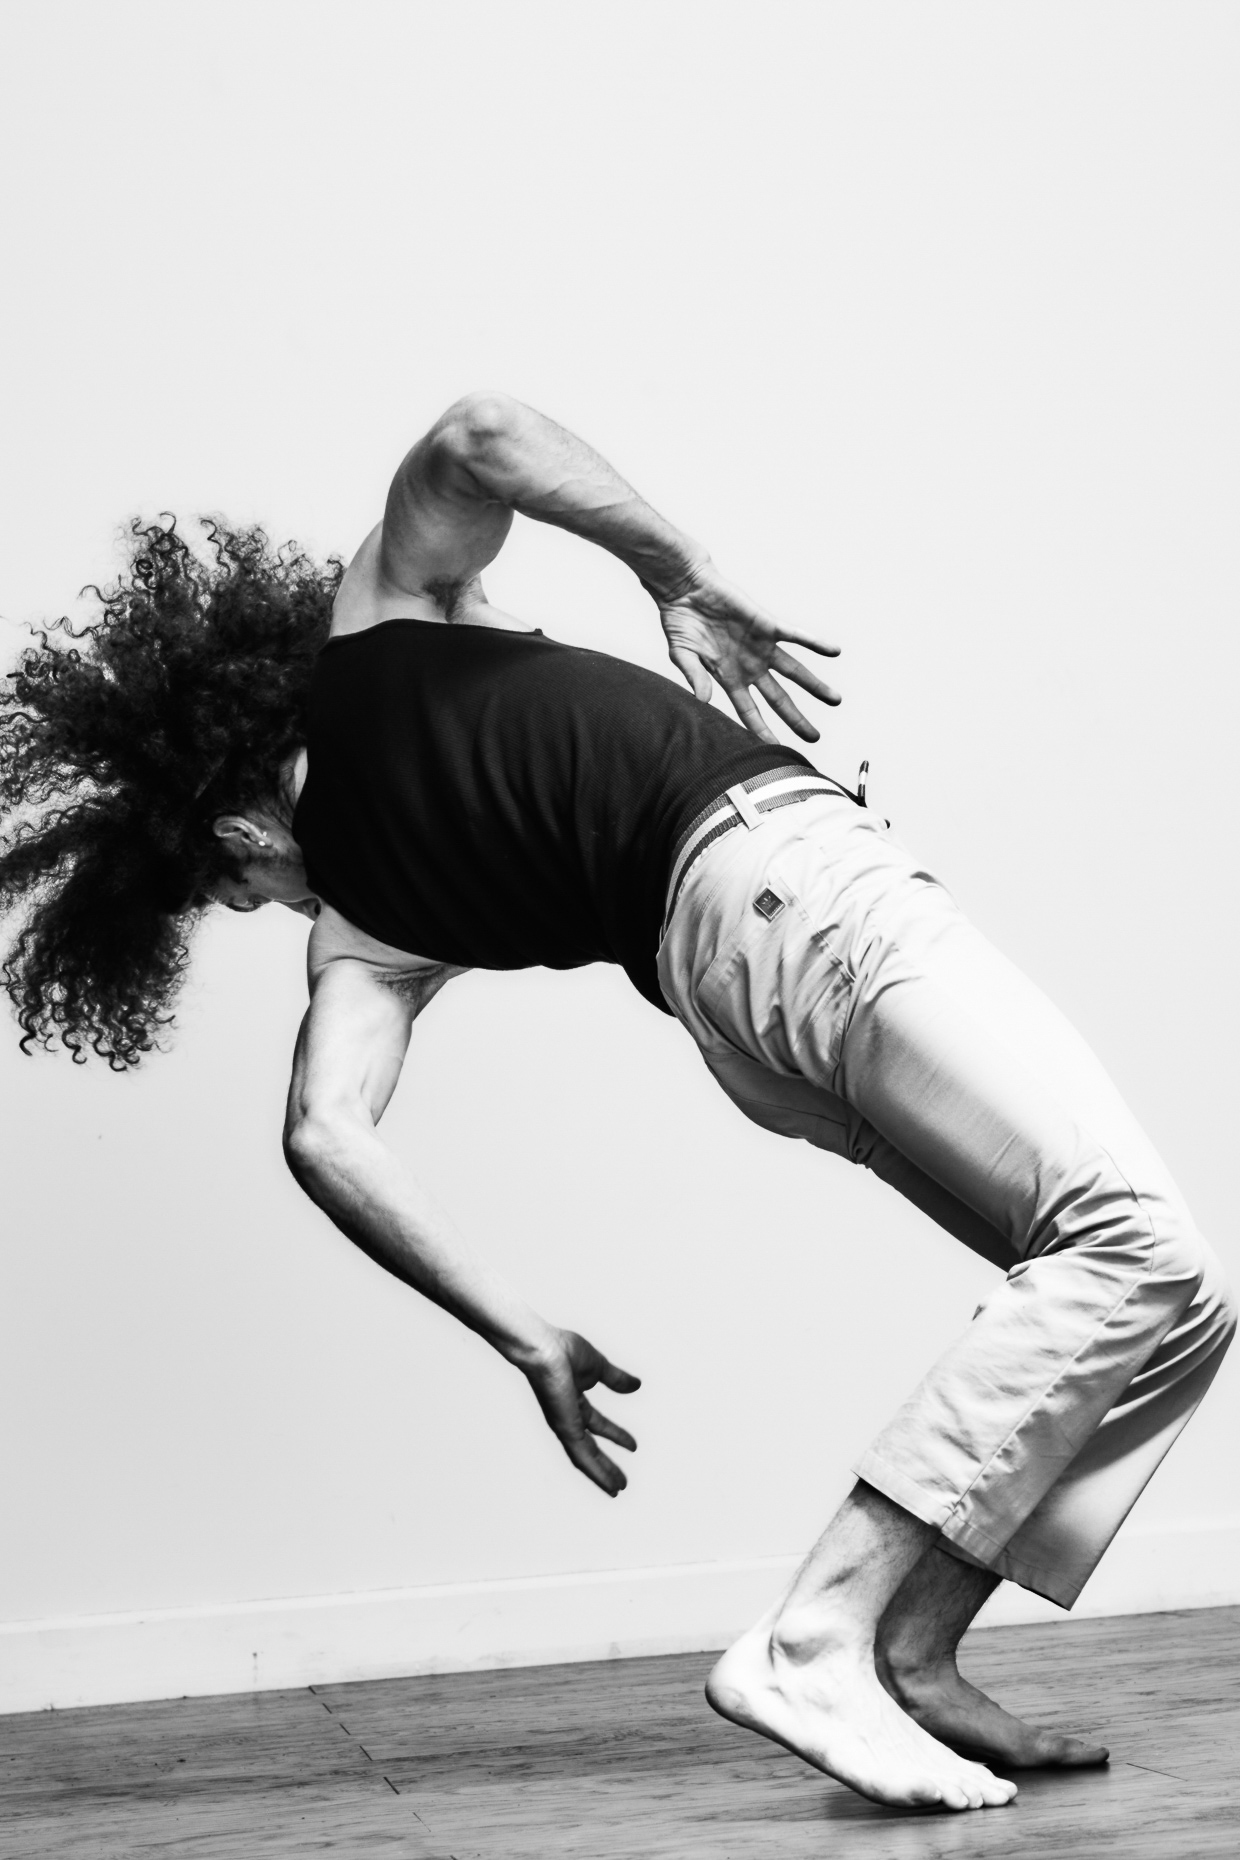 urban dancer Michael Galen break dances in a white studio by Andy Batt